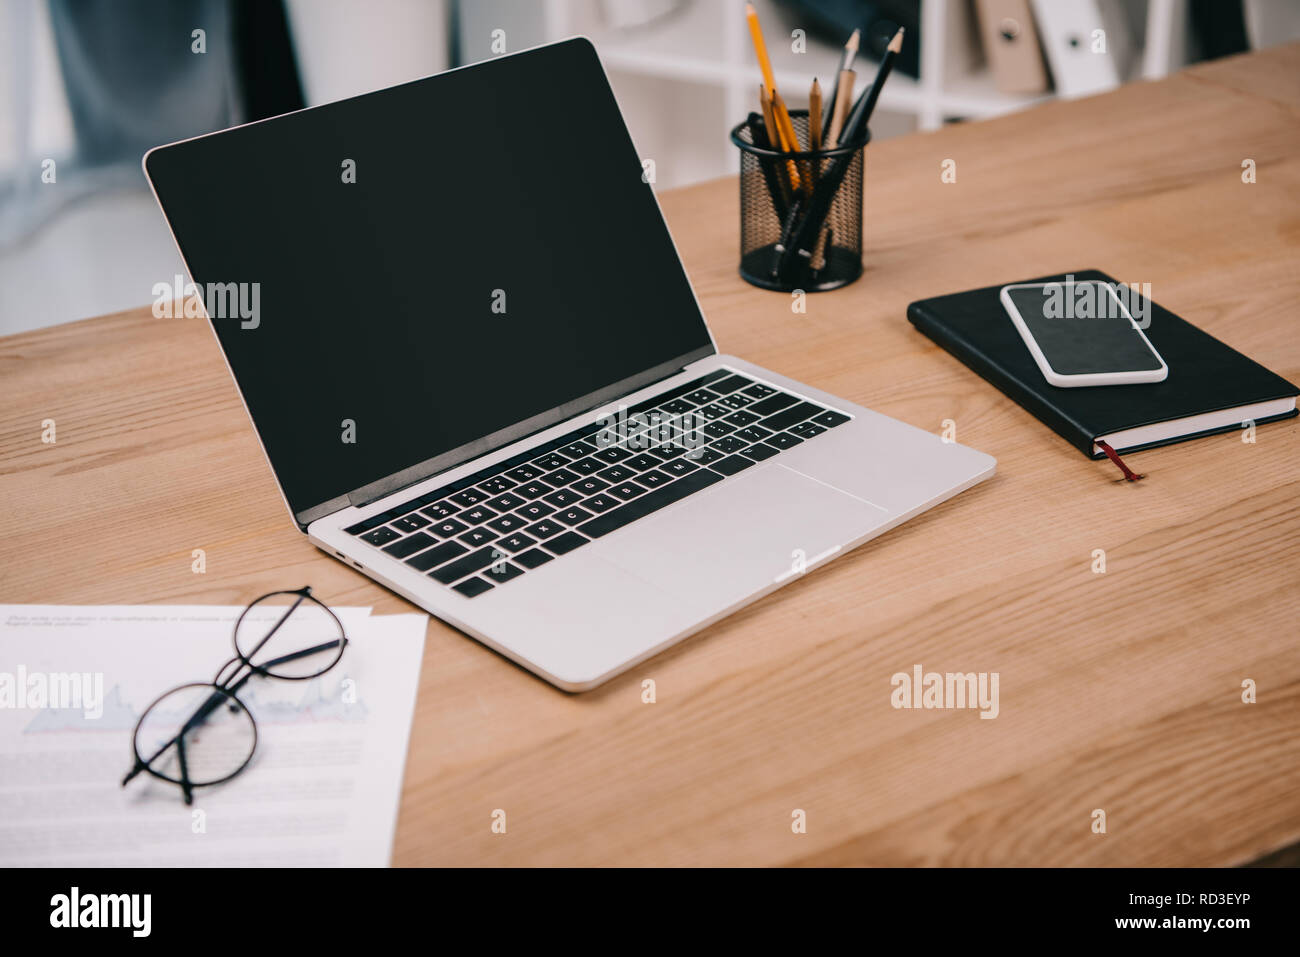 laptop with blank screen, business documents, smartphone and office supplies at workplace - Stock Image